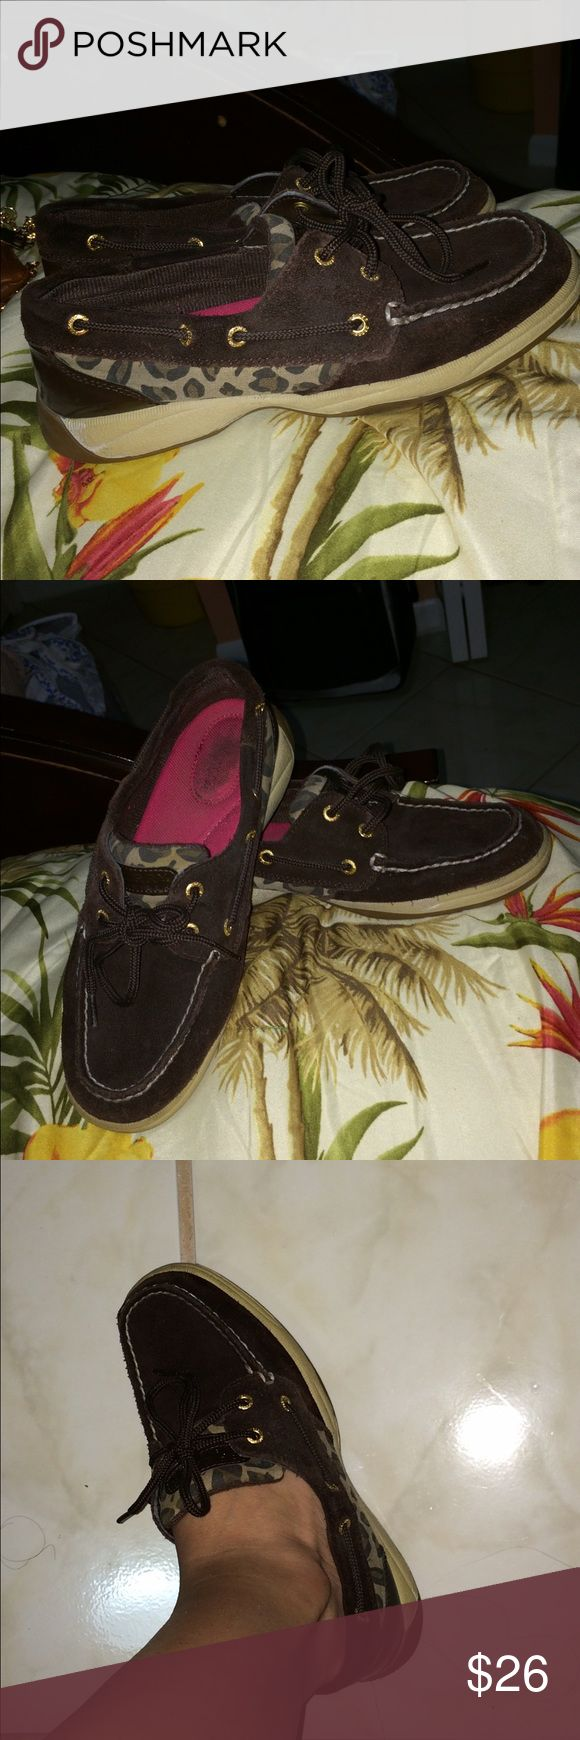 Woman Sperry size 6 with leopard print Leopard Sperry size 6 worn a handful of time very comfortable shoes. You can only see wear at the bottom as you can see. No longer using this shoes and its occupying space in my closet asking for $26 every offer will be consider Sperry Top-Sider Shoes Flats & Loafers